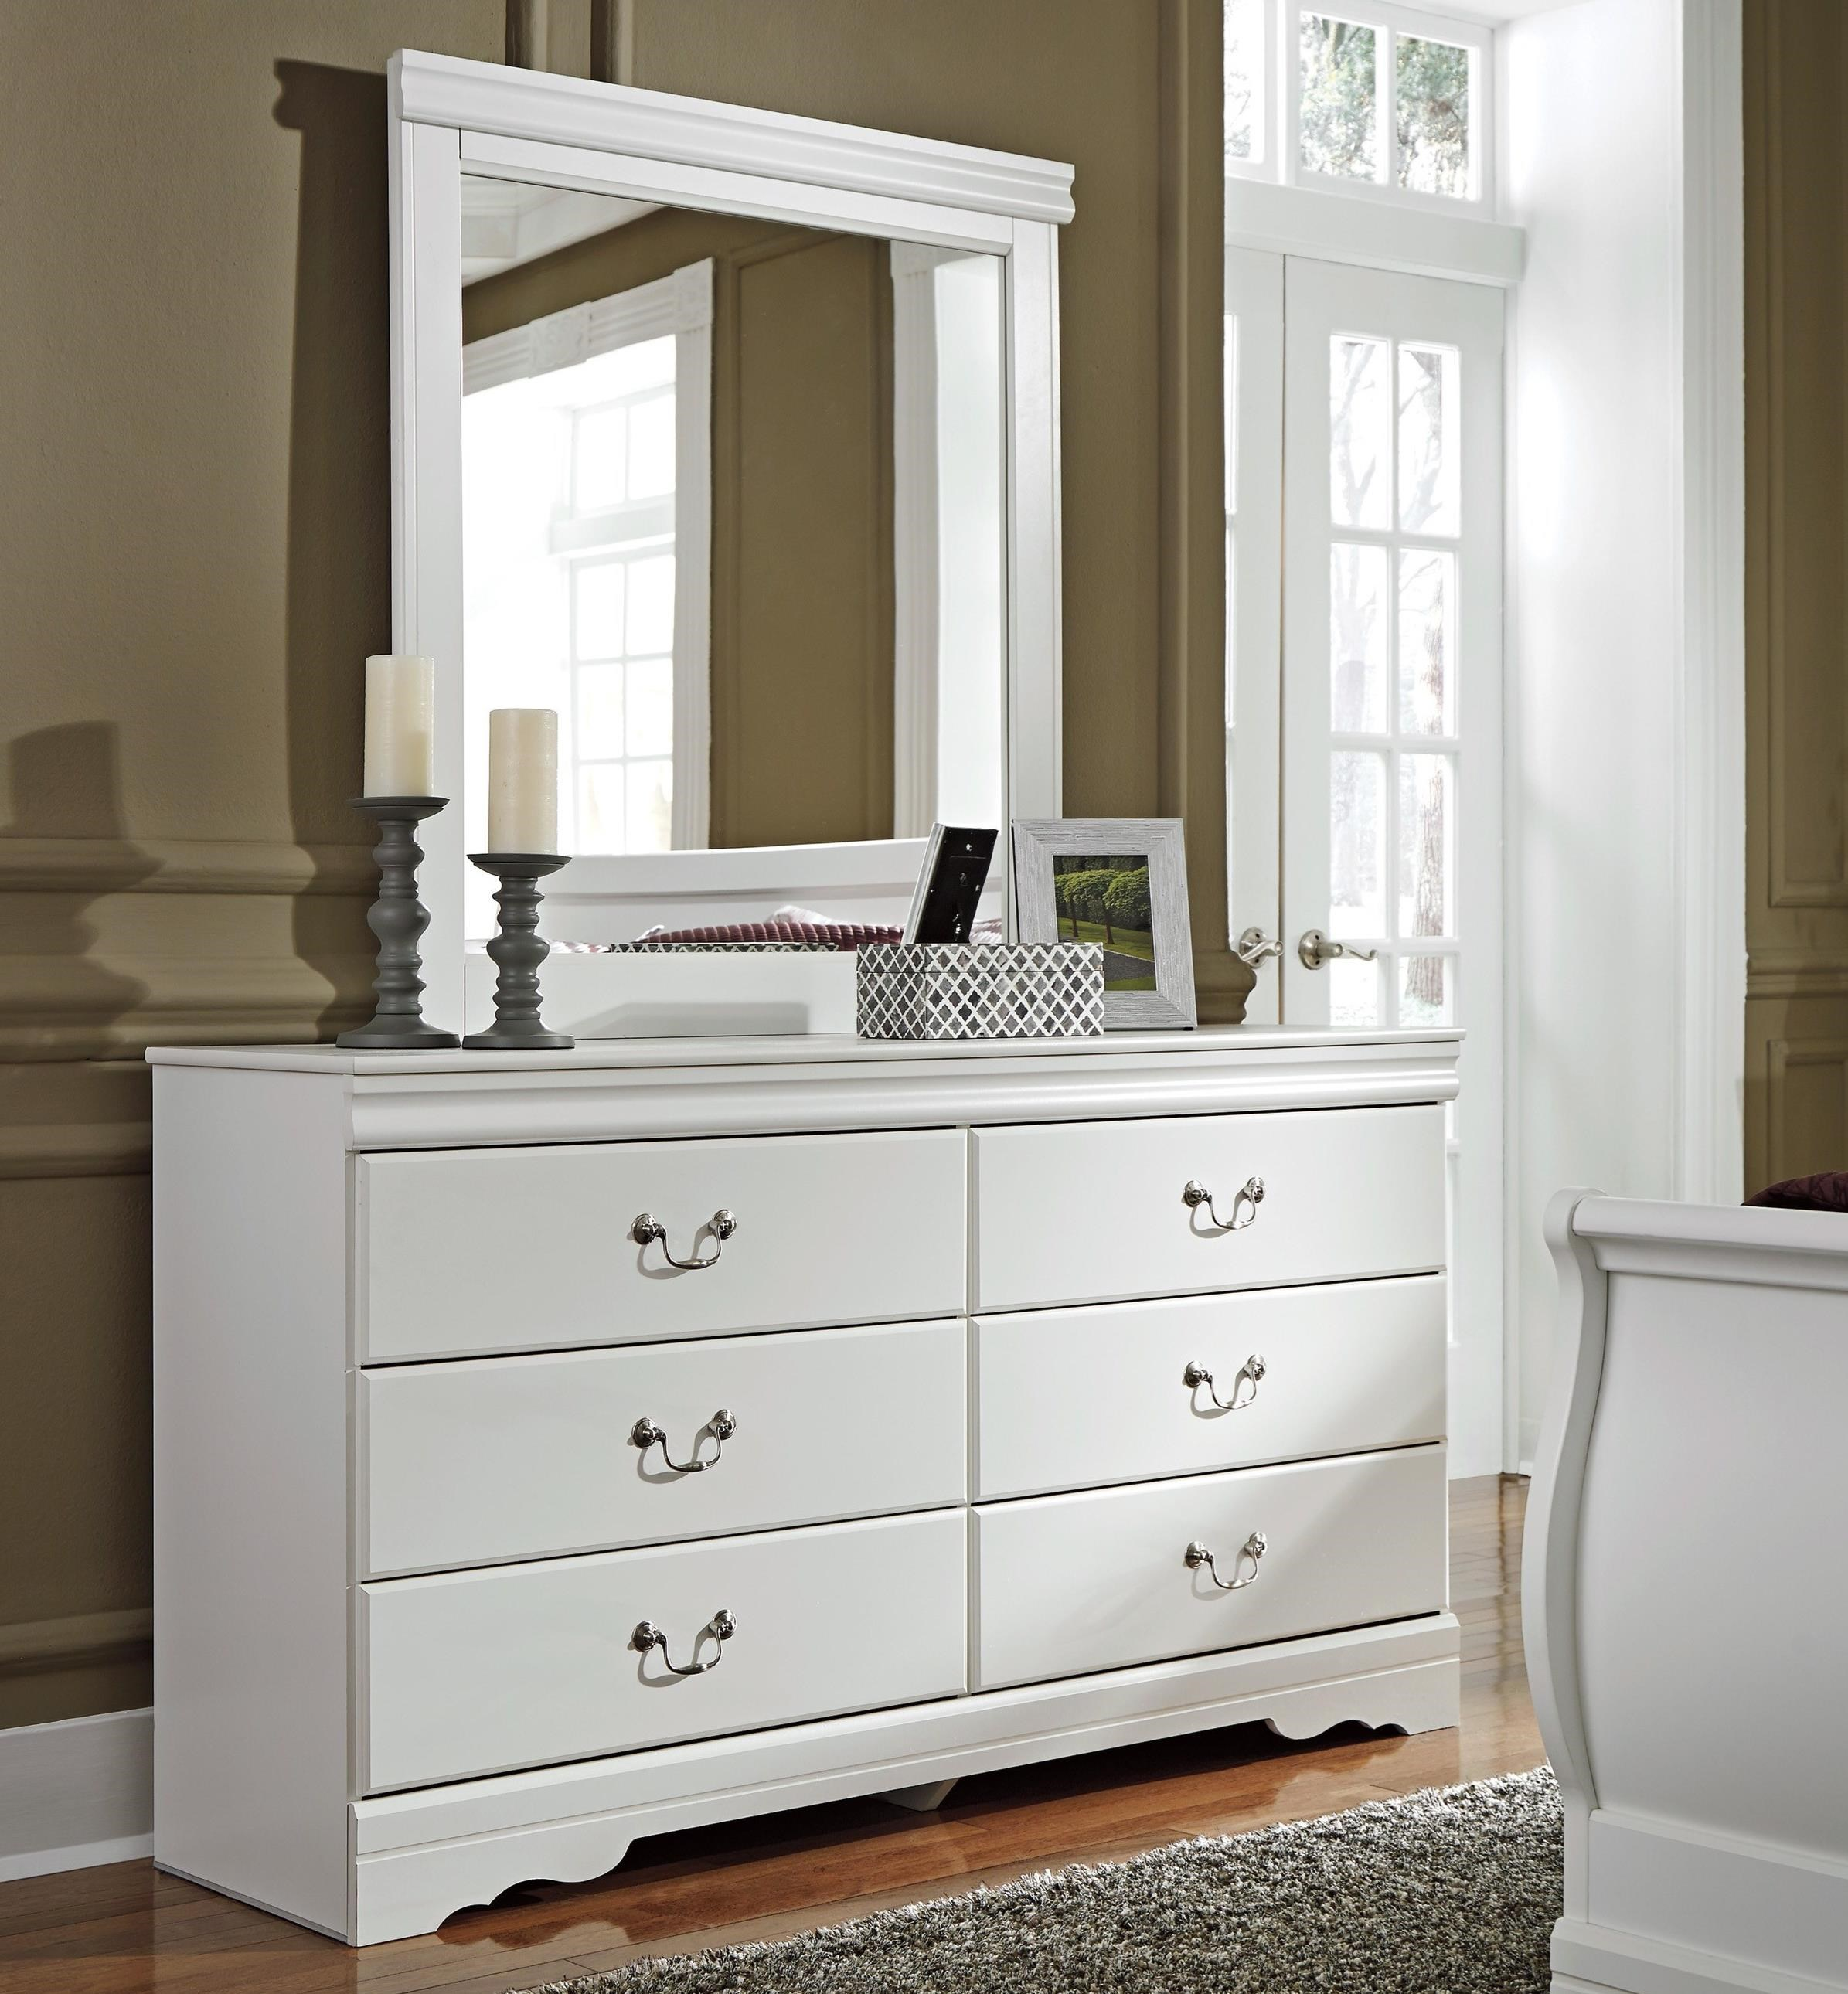 Anarasia Dresser and Mirror Combination by Signature Design by Ashley at Northeast Factory Direct